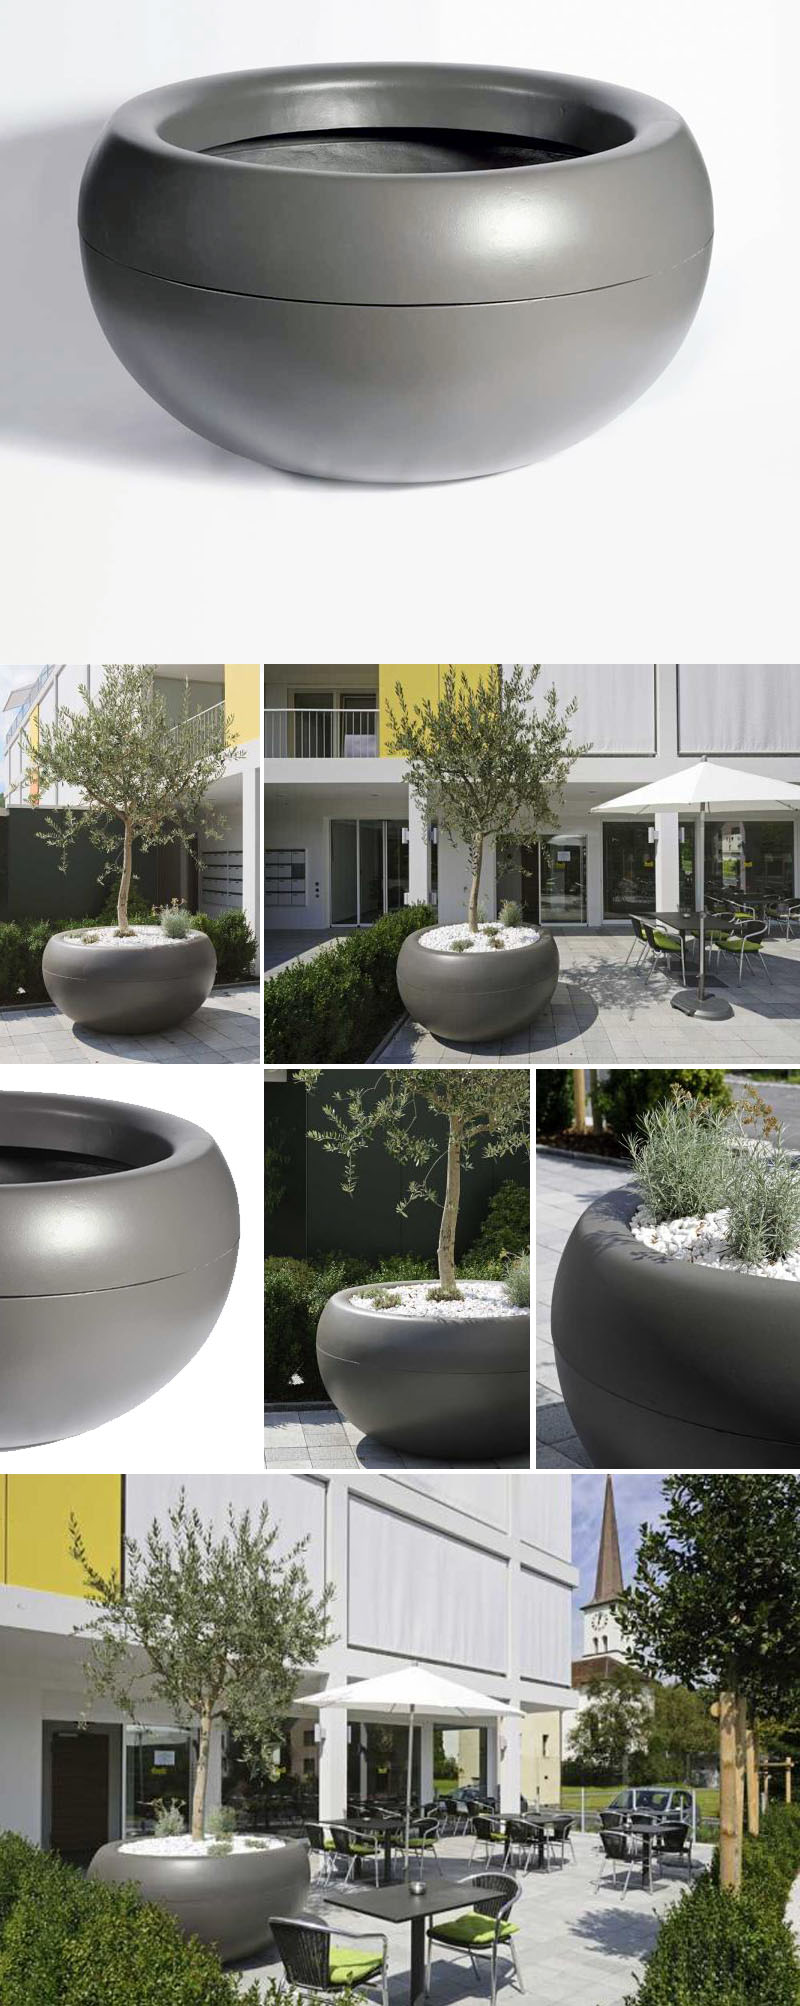 Aladin extra large commericial planter outdoor pots for trees click to view additional images